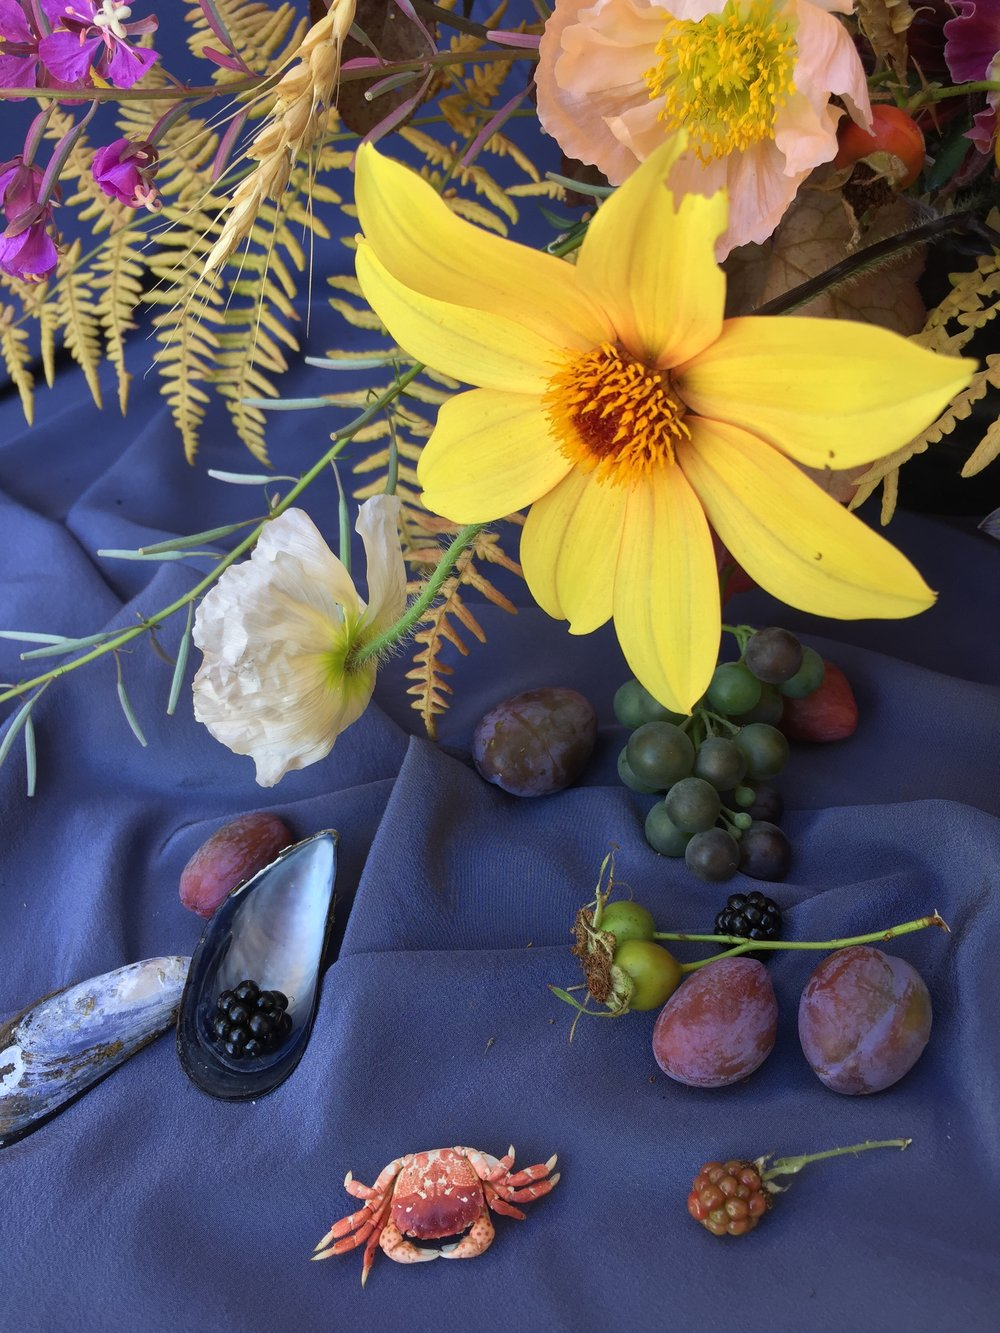 Fruits and Flowers of the Sea